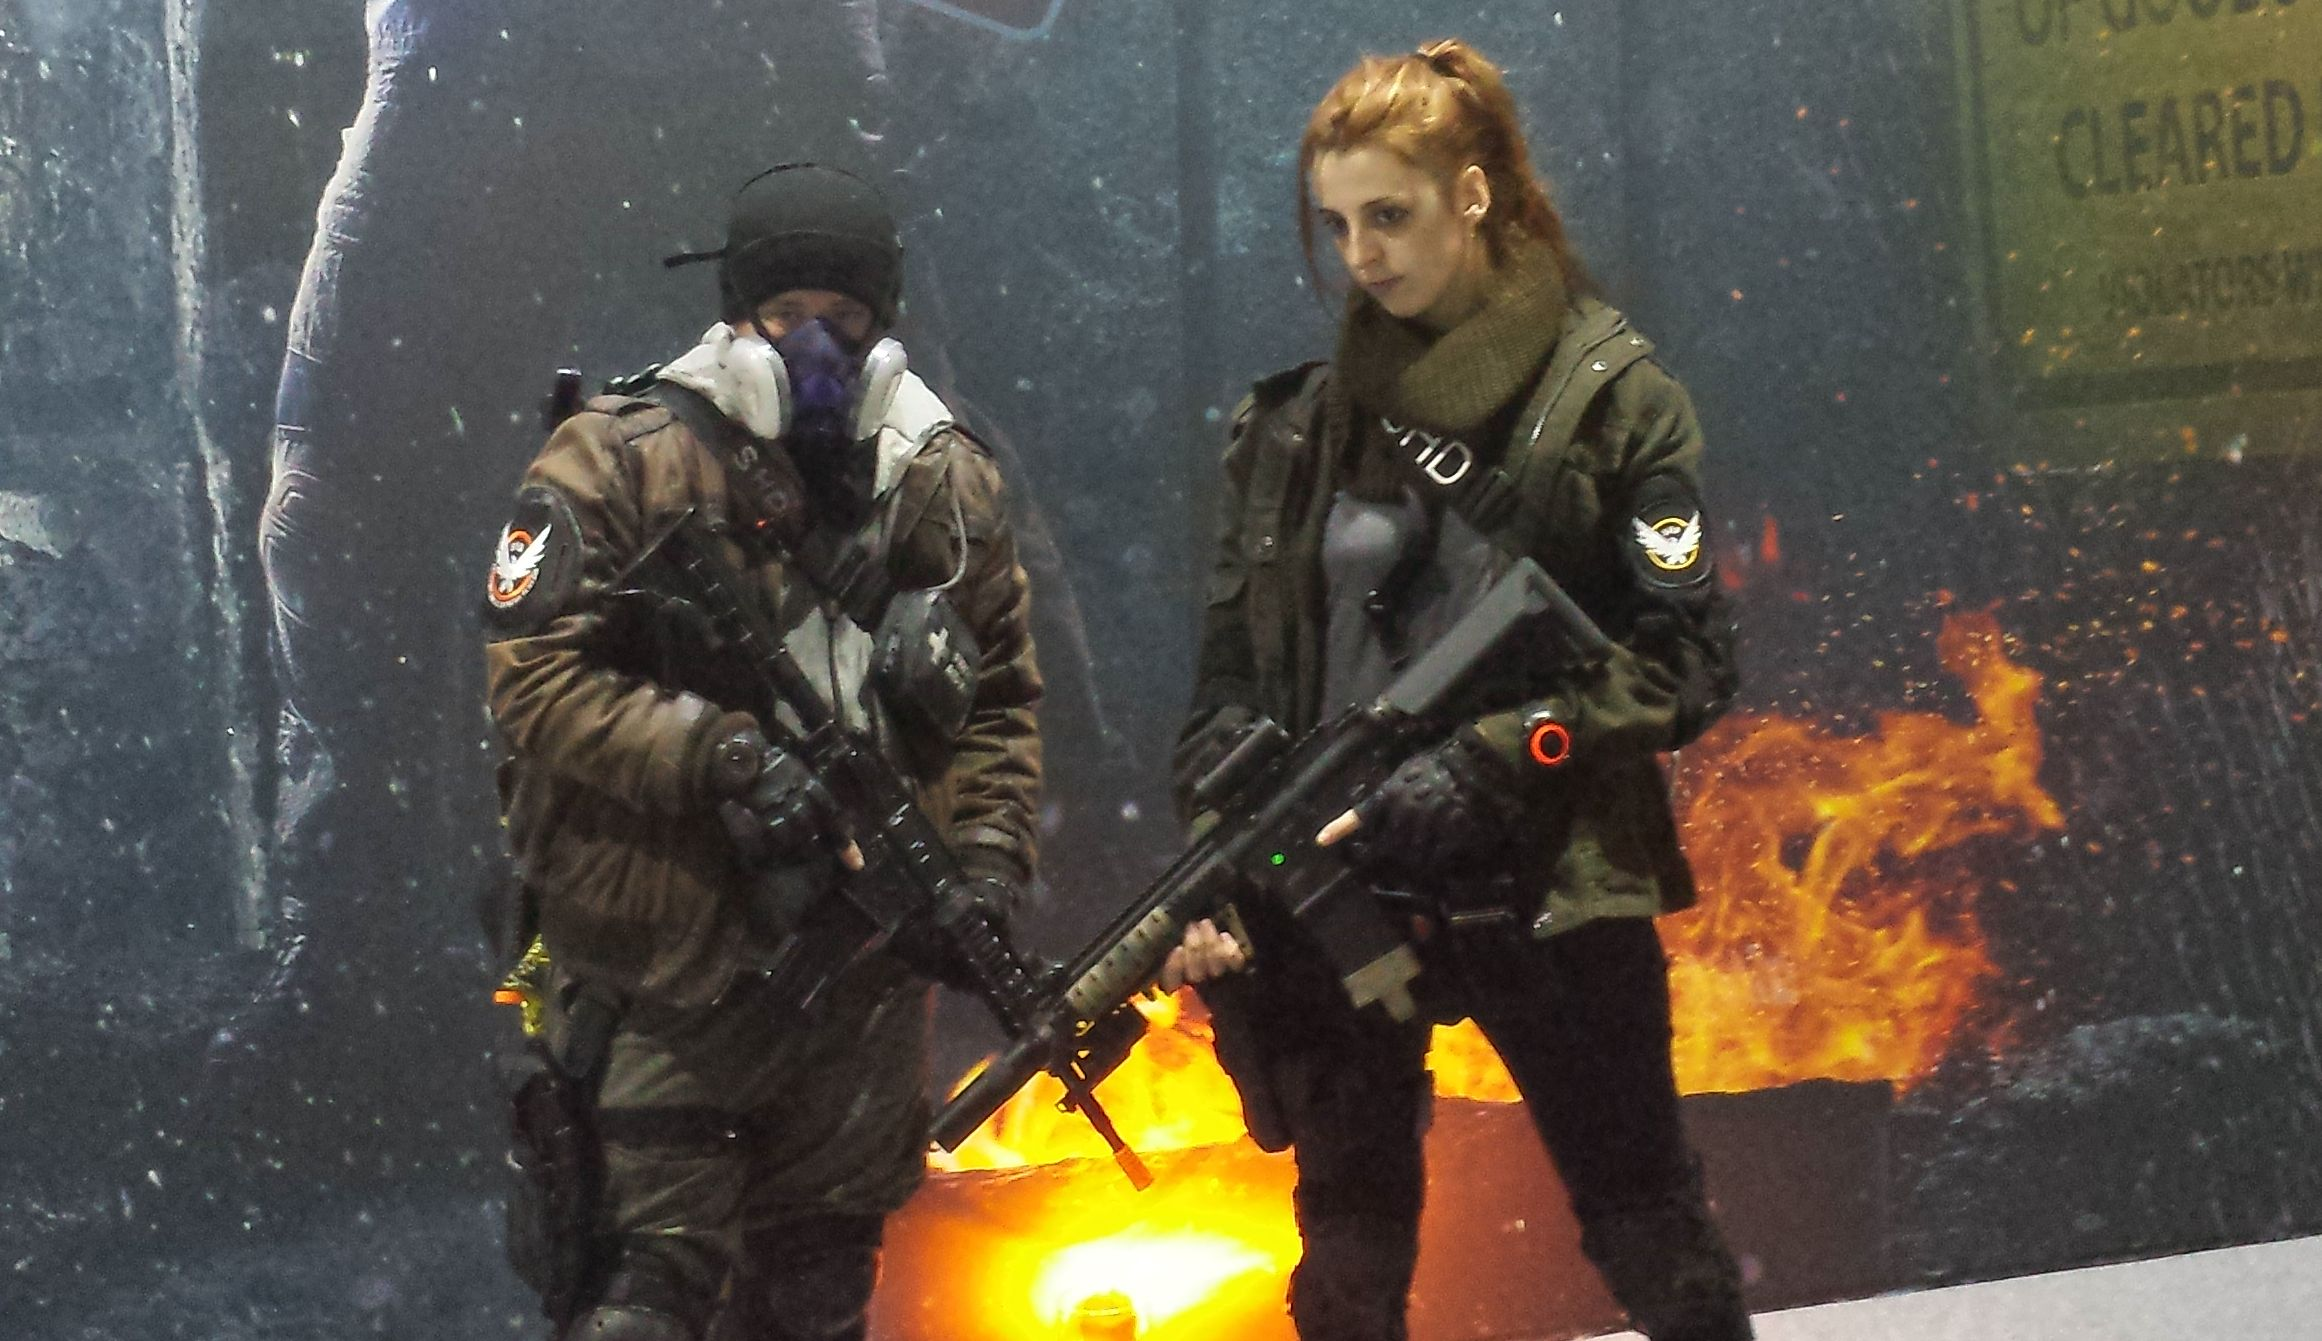 The Division - just one of many shooters at EGX 2015